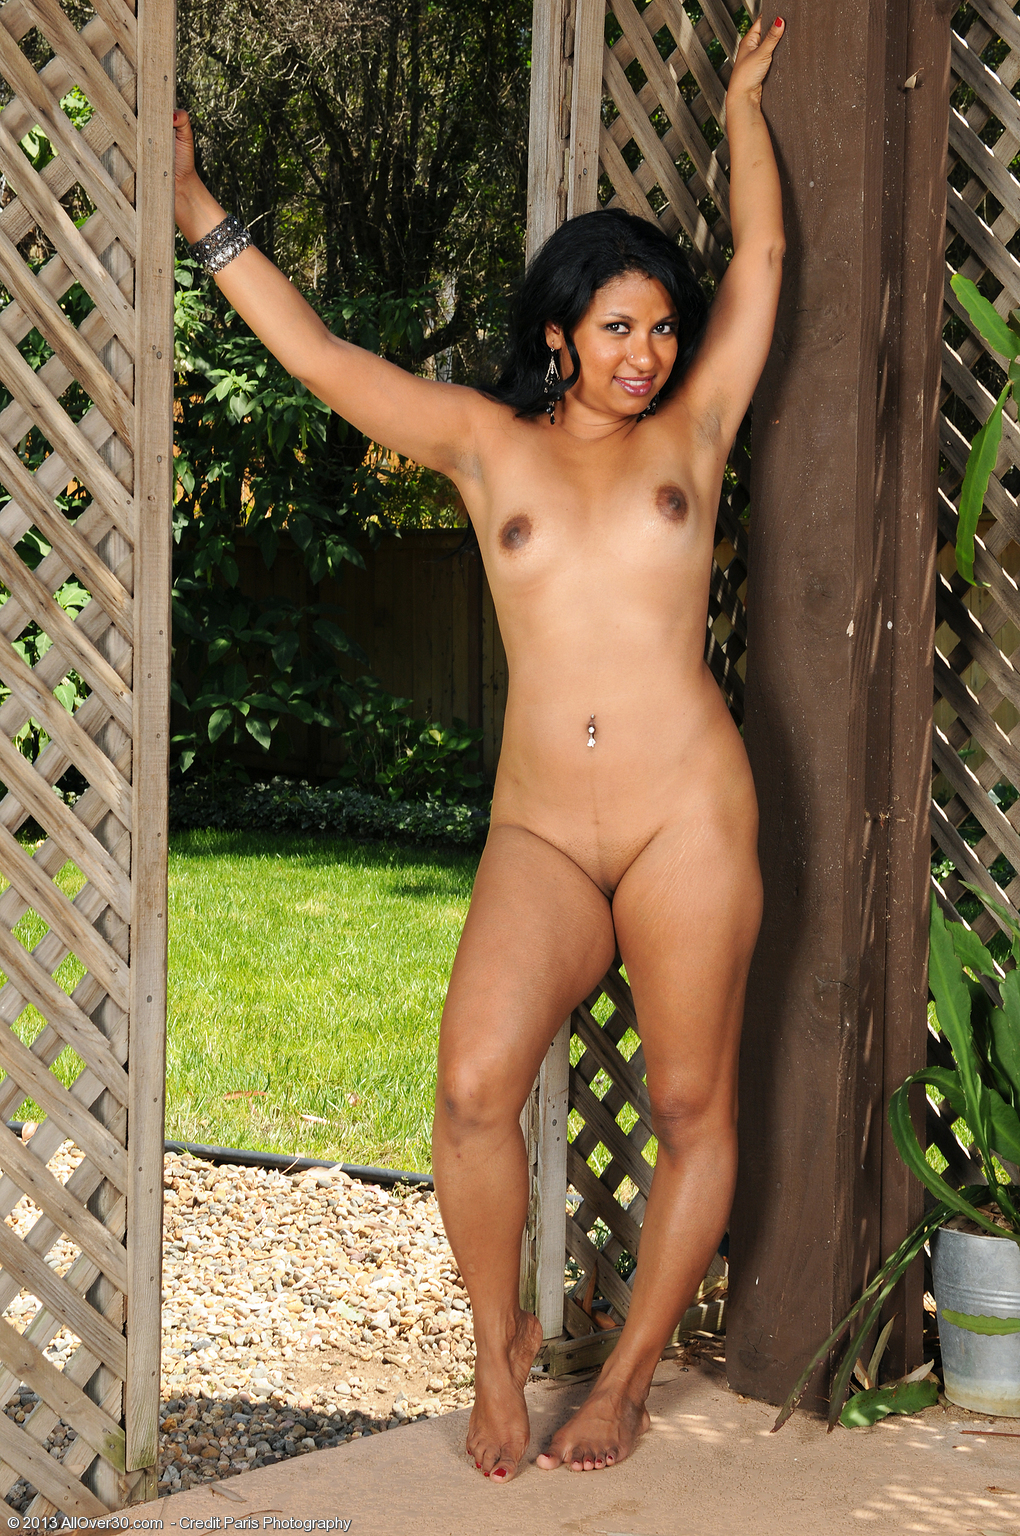 Pity, Older women naked outside with